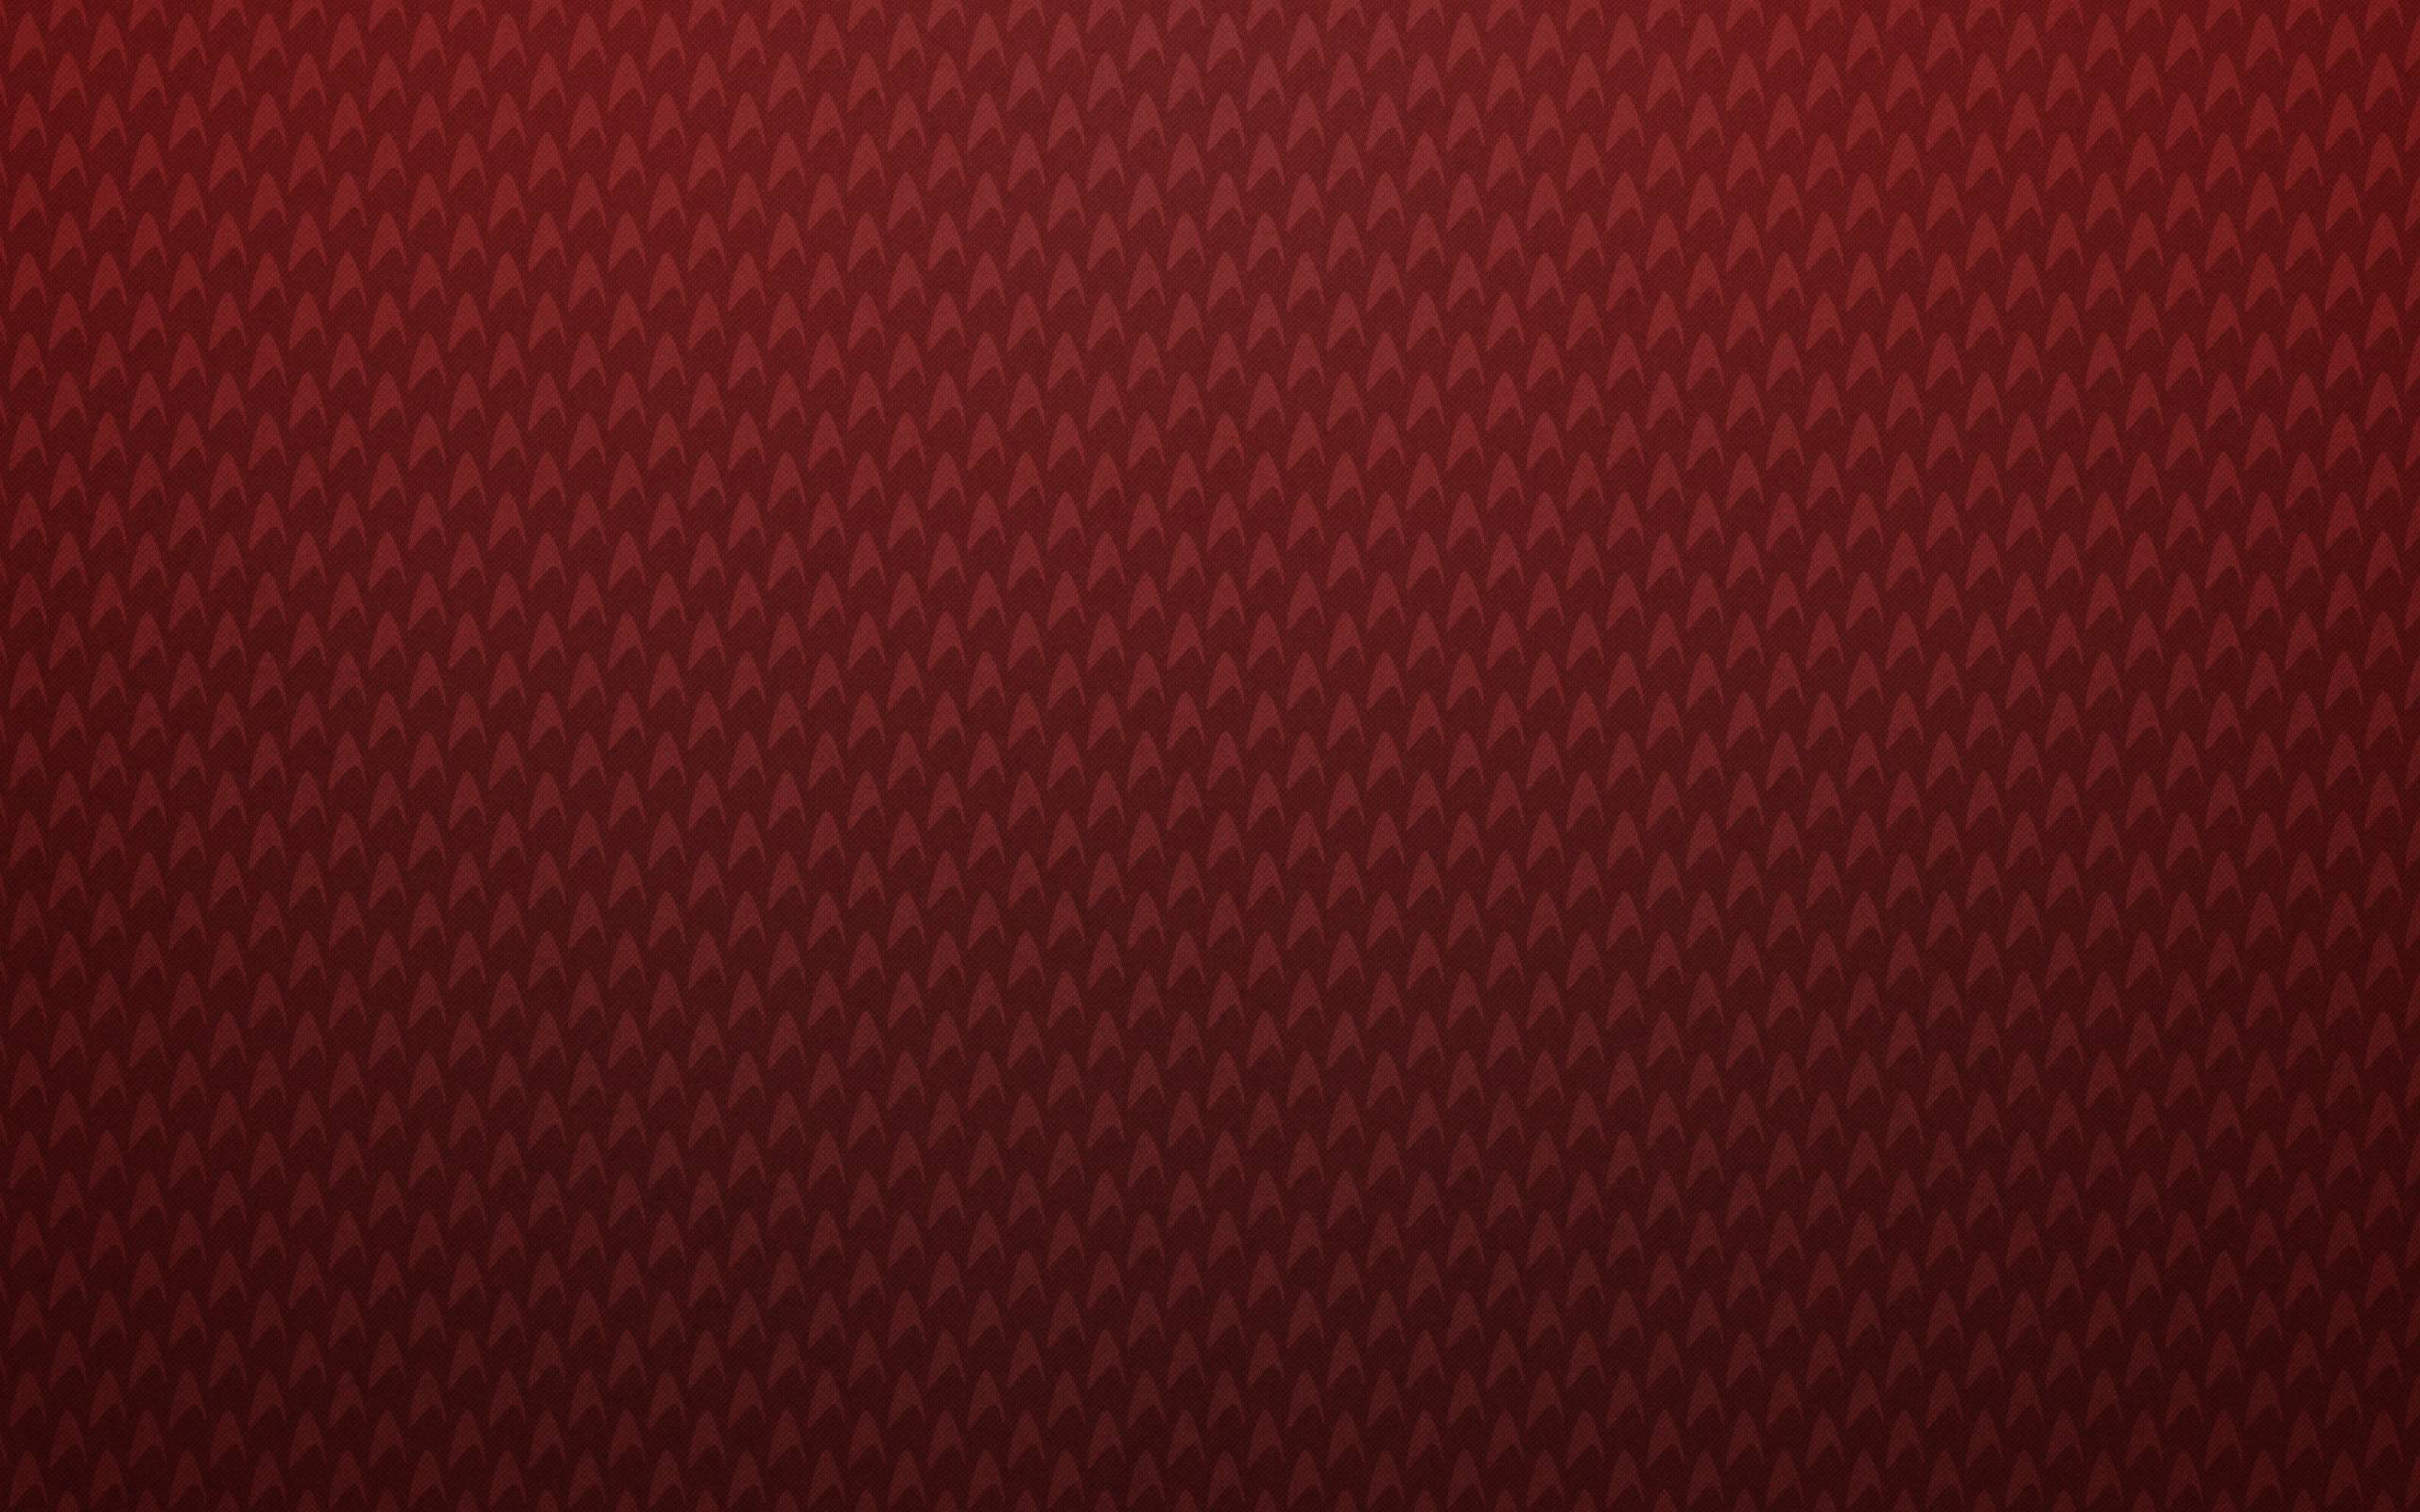 red textured background hd - photo #20